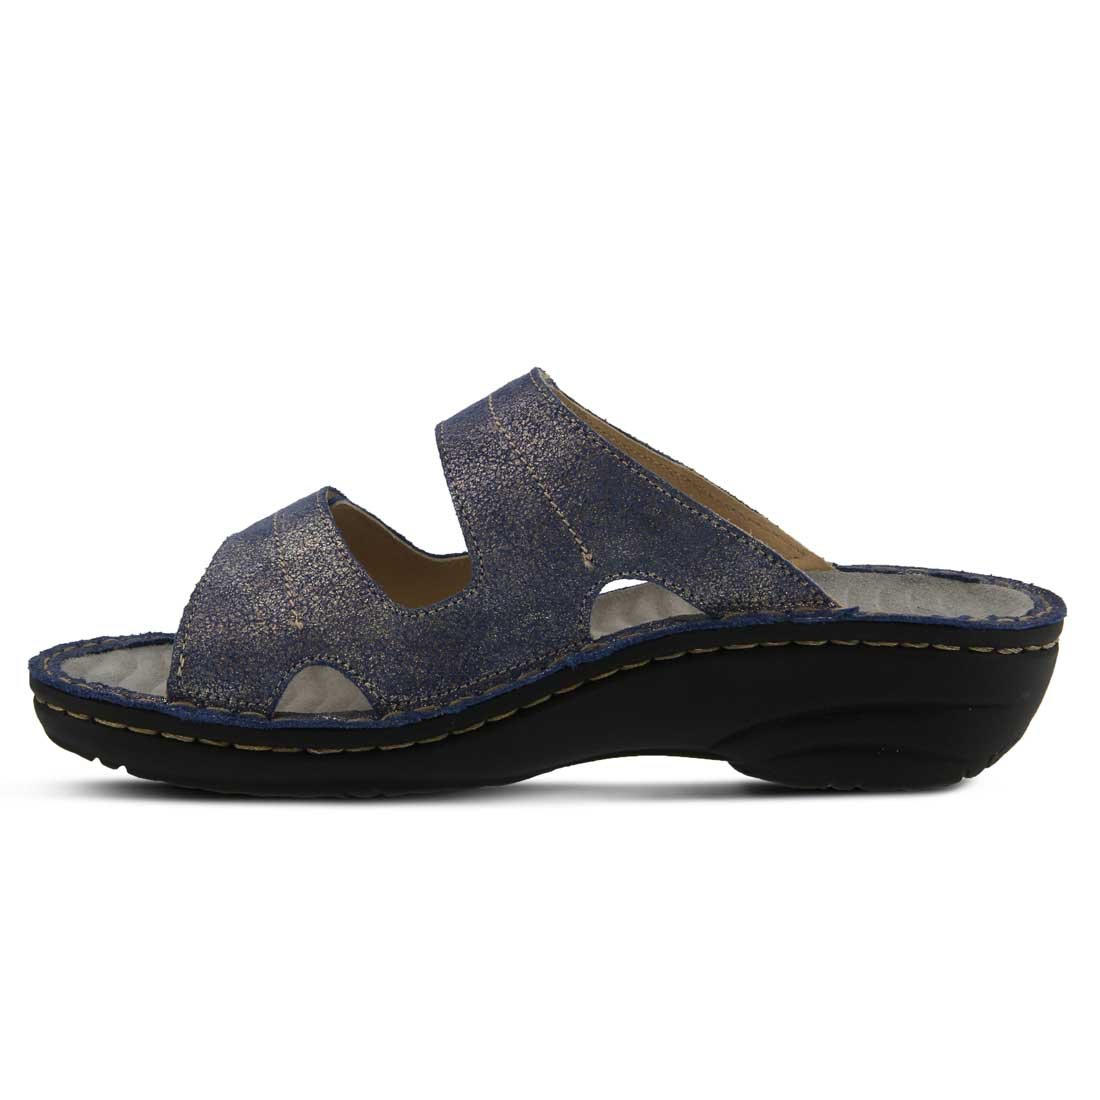 Spring Step Women's Marsela Flat Sandal B01N9KB66K 40 US)|Blue M EU (US 9 US)|Blue 40 f0f469